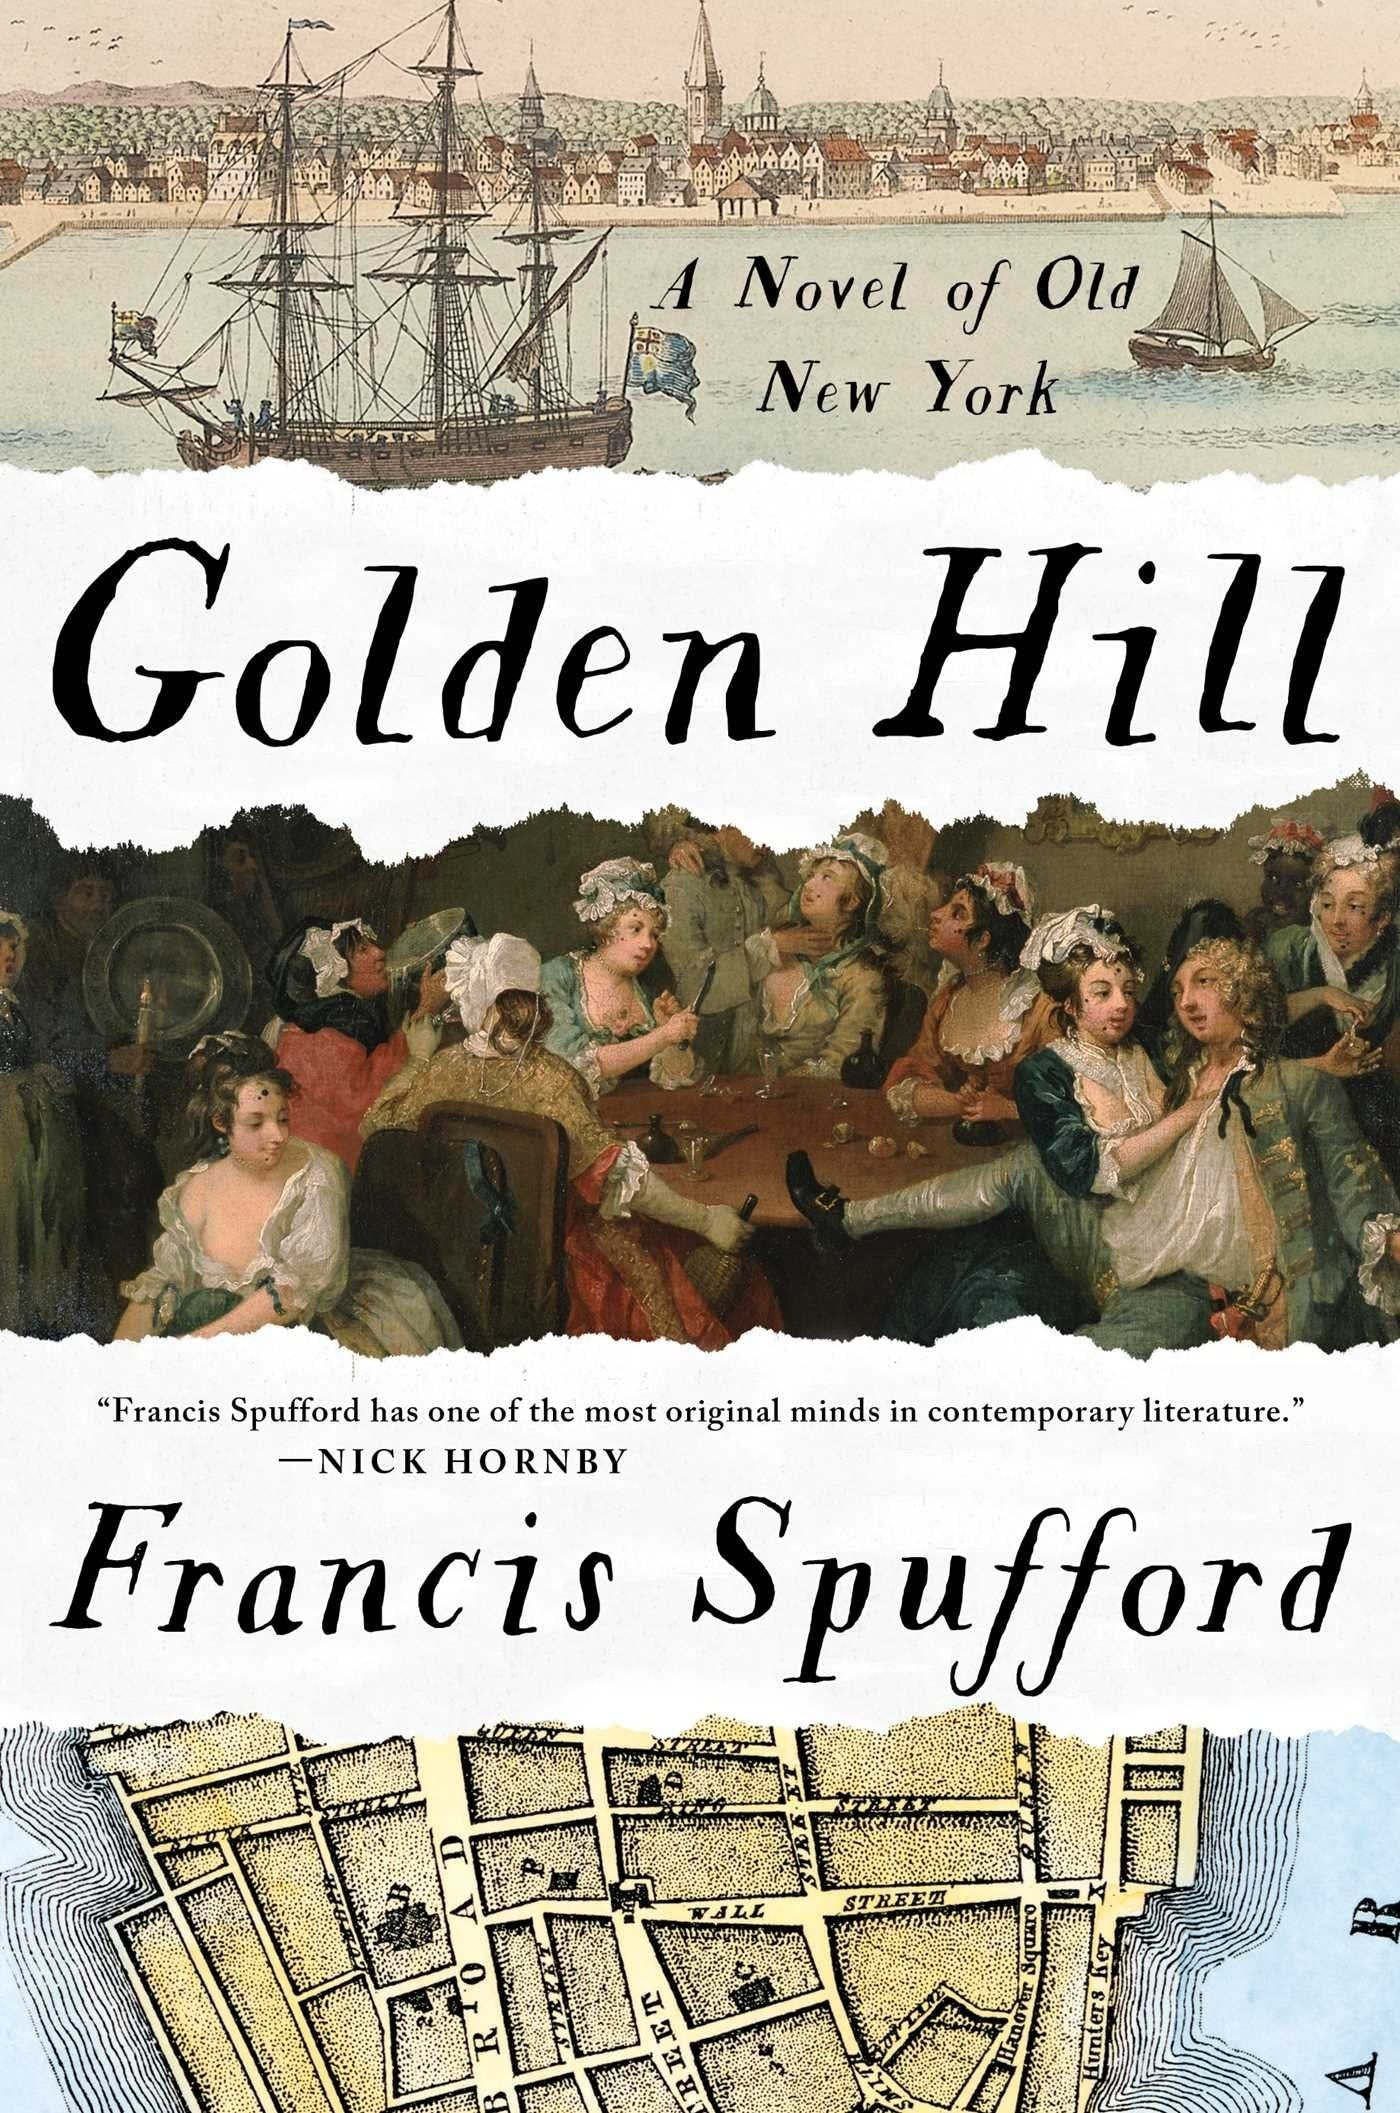 'Golden Hill' by Francis Spufford